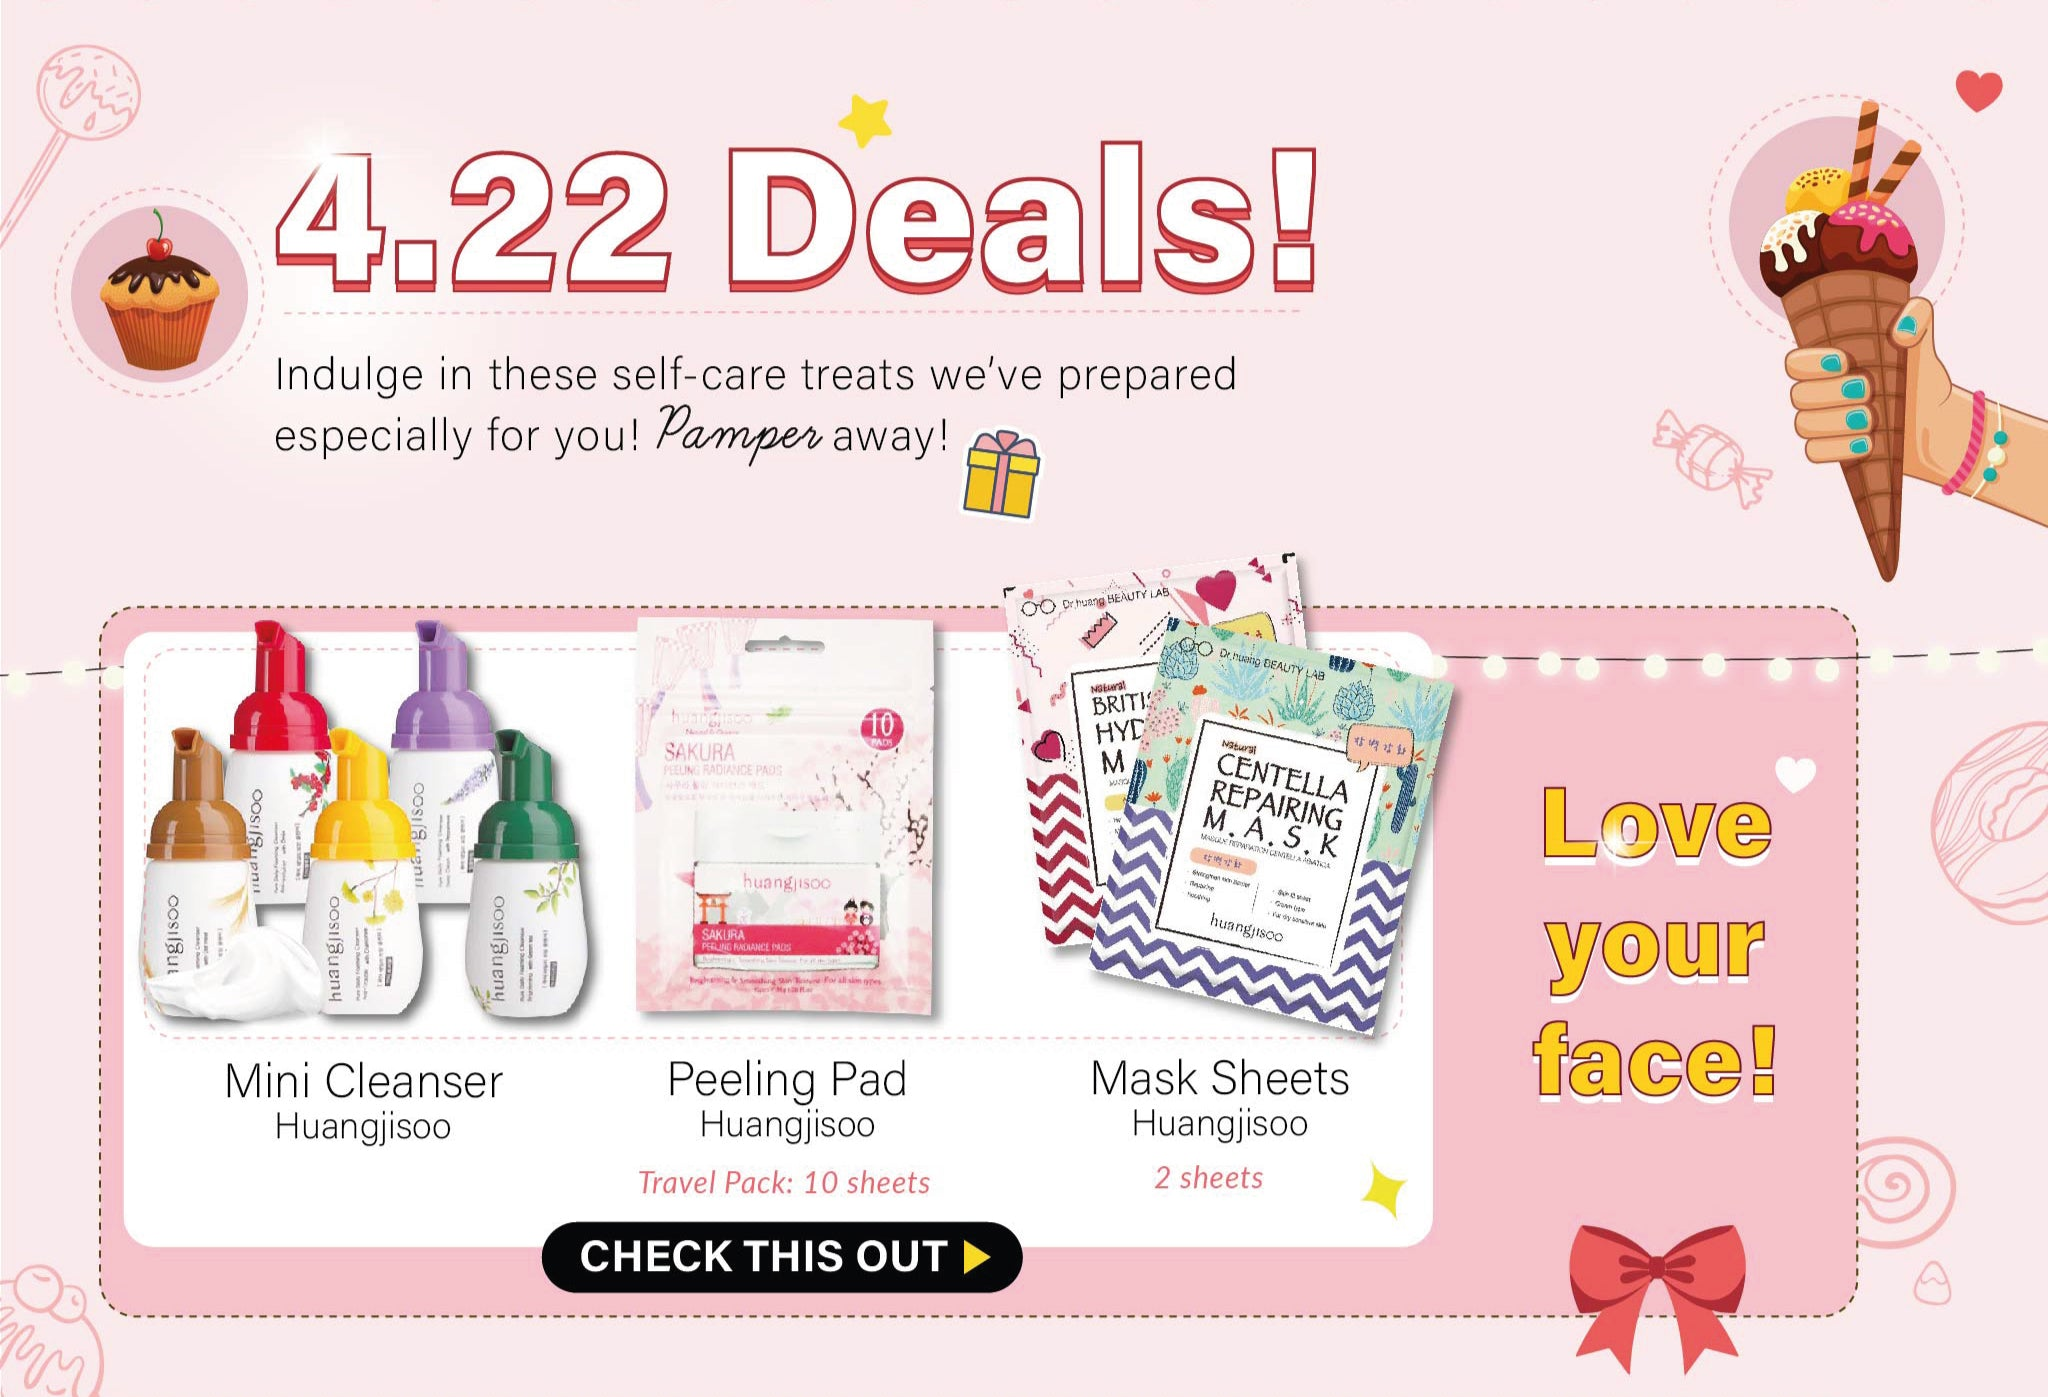 Check out our deals going at just 4.22!